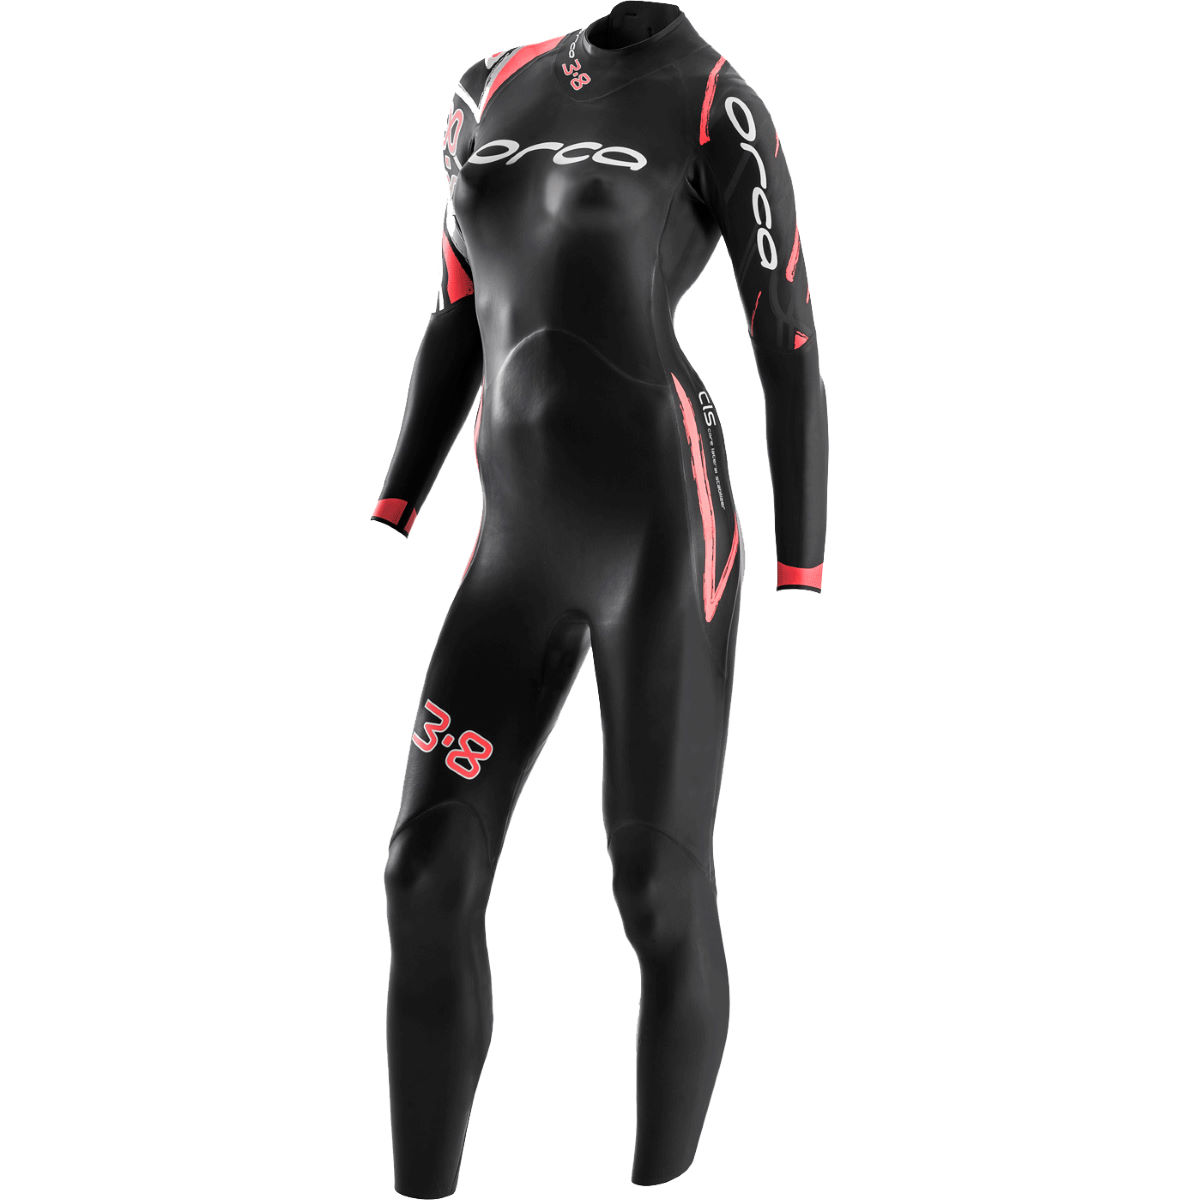 Orca 3.8 Women's Wetsuit - Extra Large Black | Wetsuits